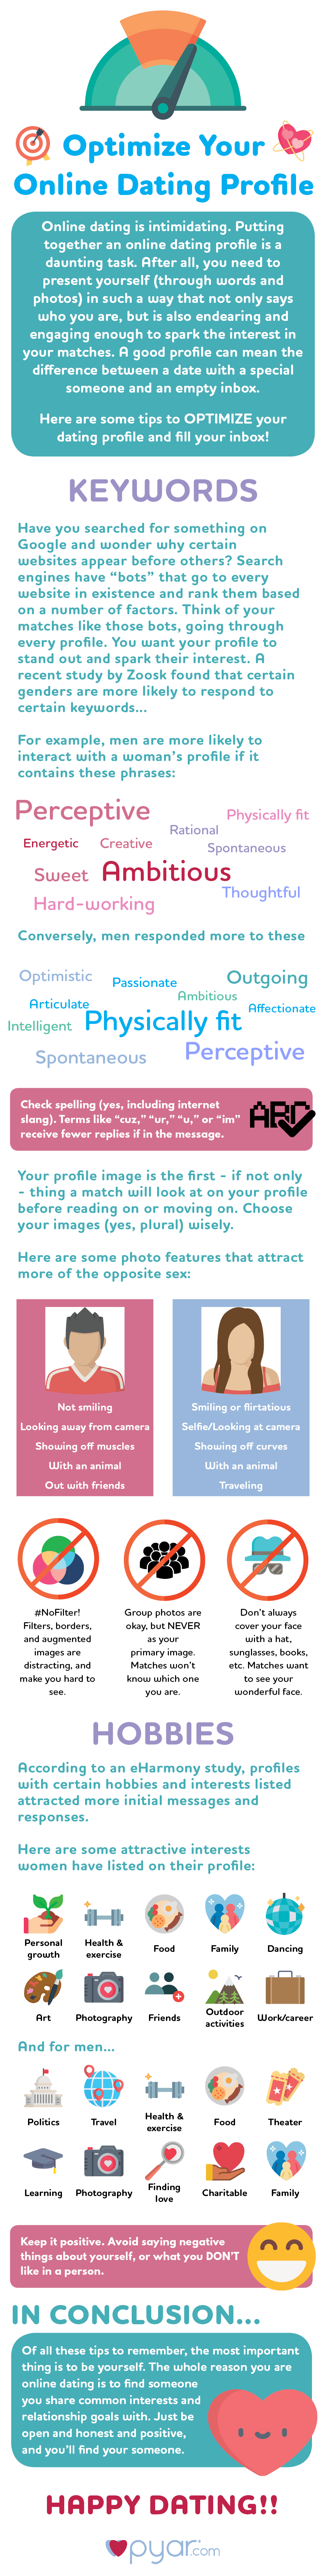 Infographic Optimize Your Online Dating Profile.png